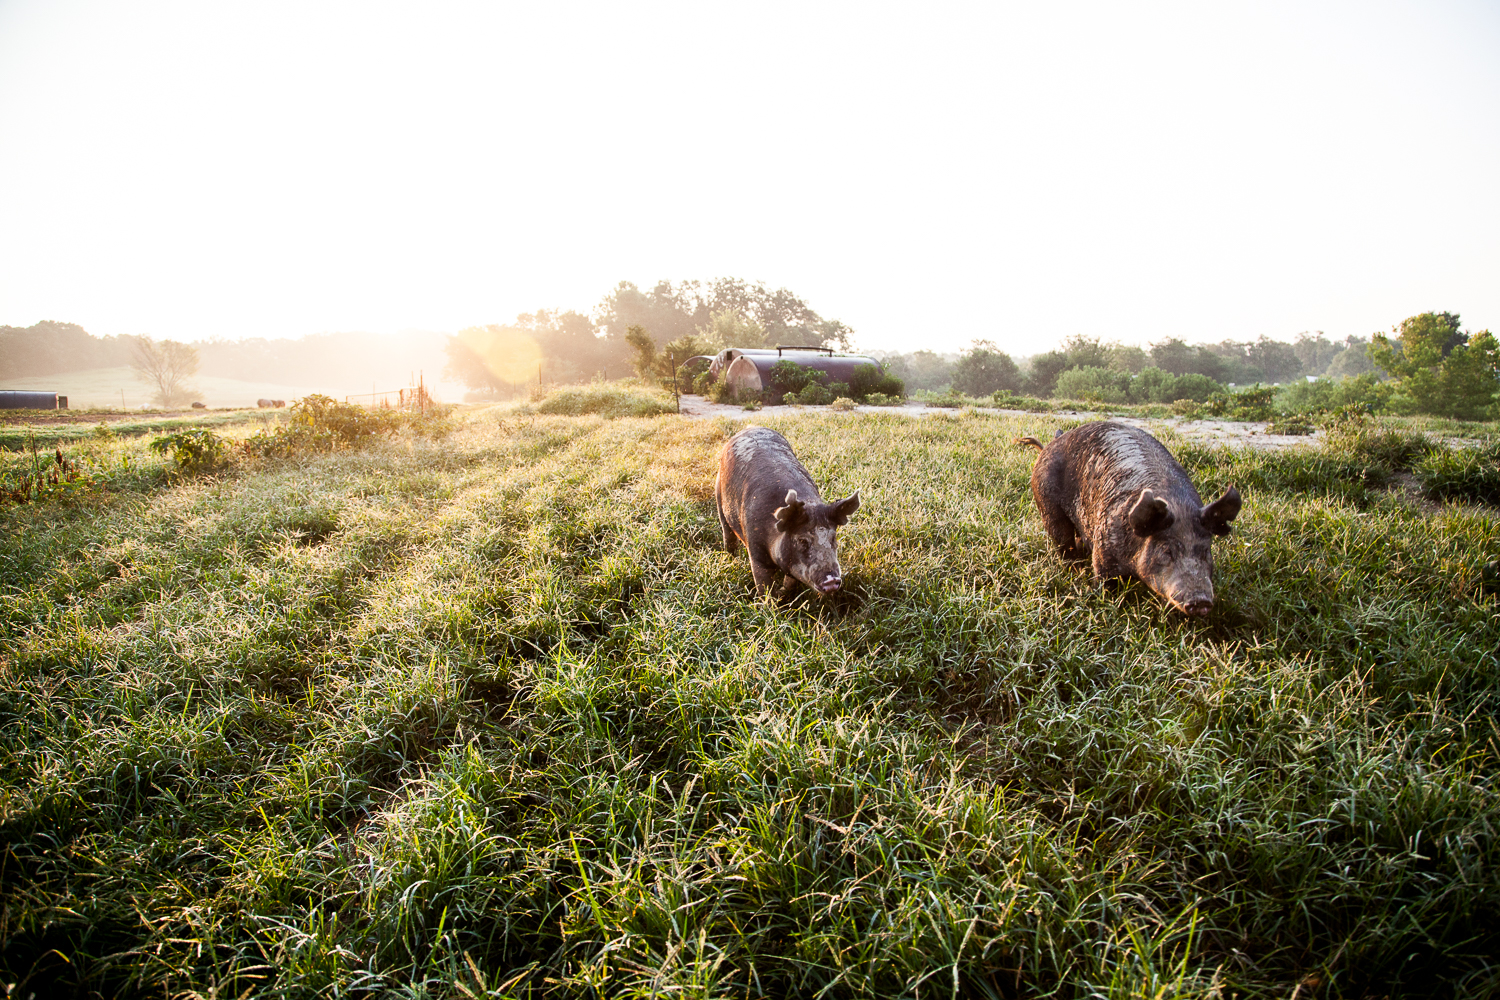 Hogs at Geisert Farm